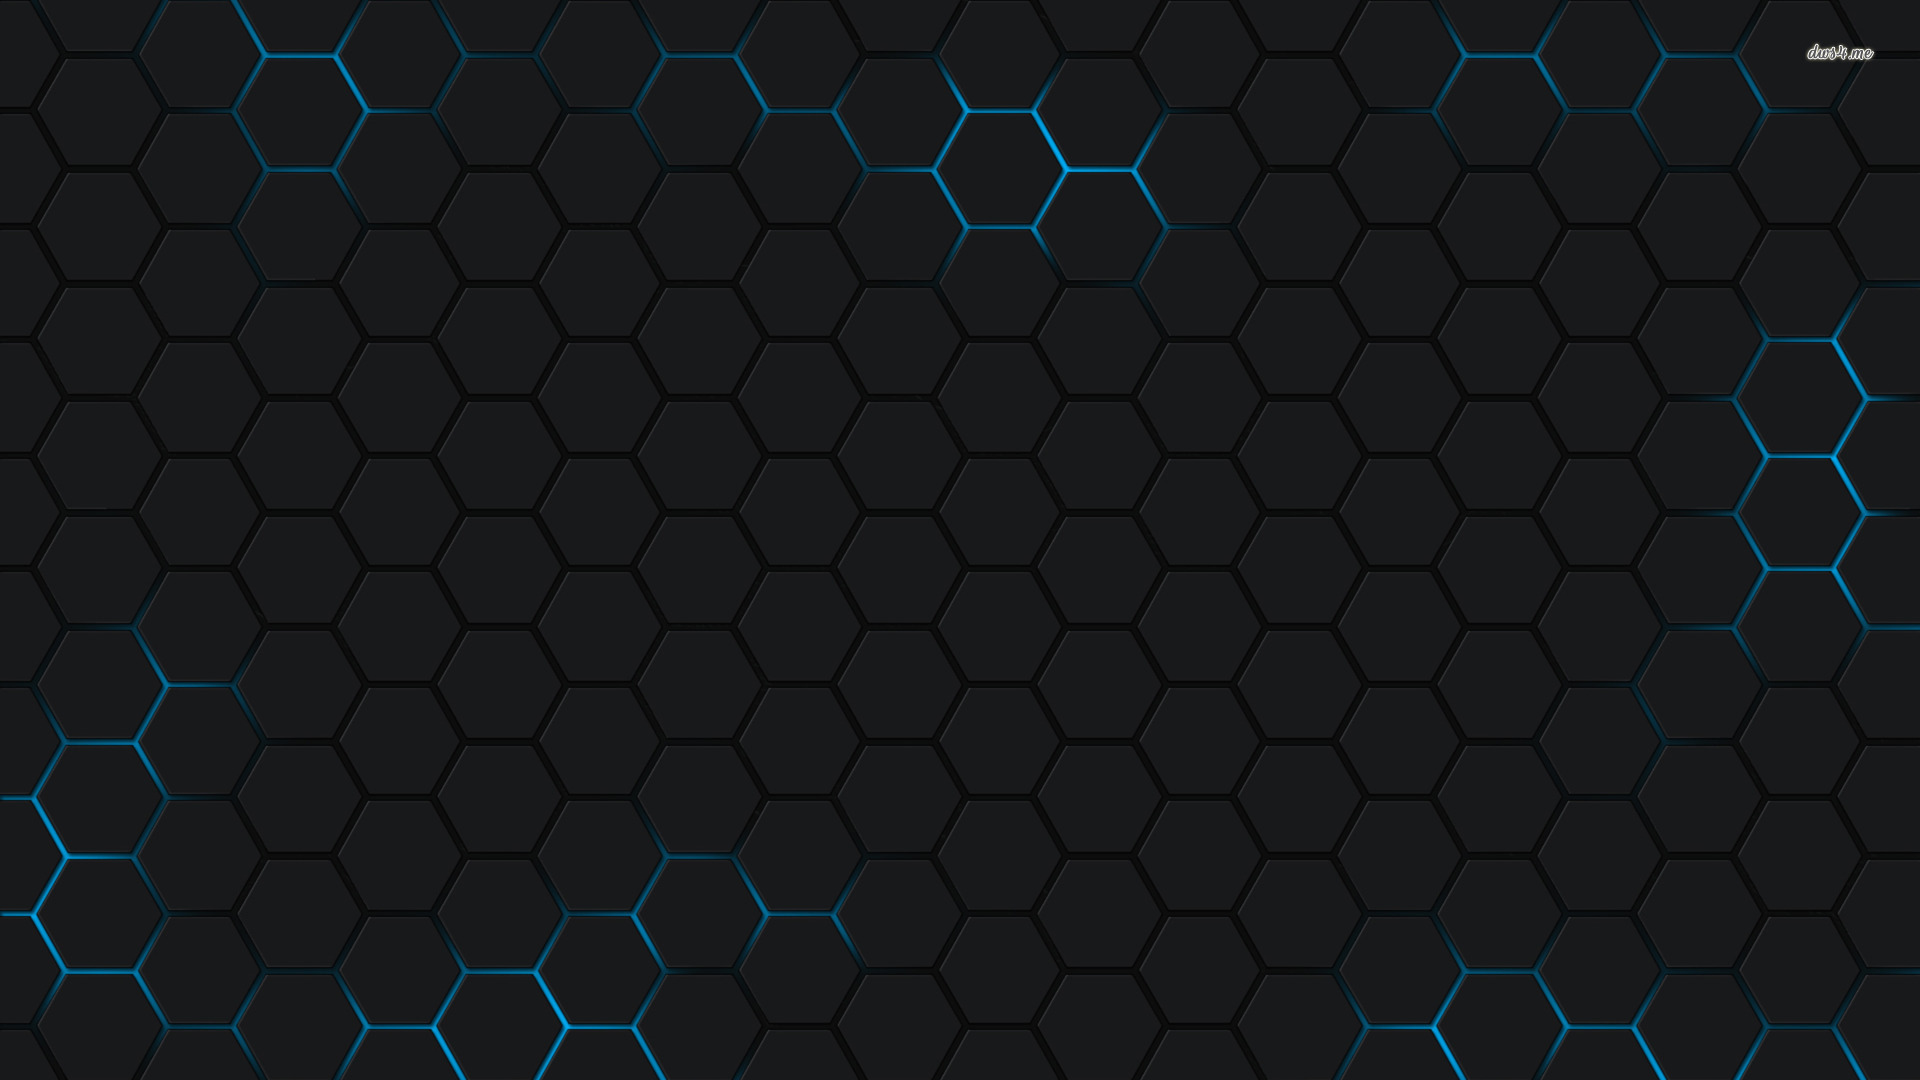 Hexagonal Wallpaper Wallpapersafari